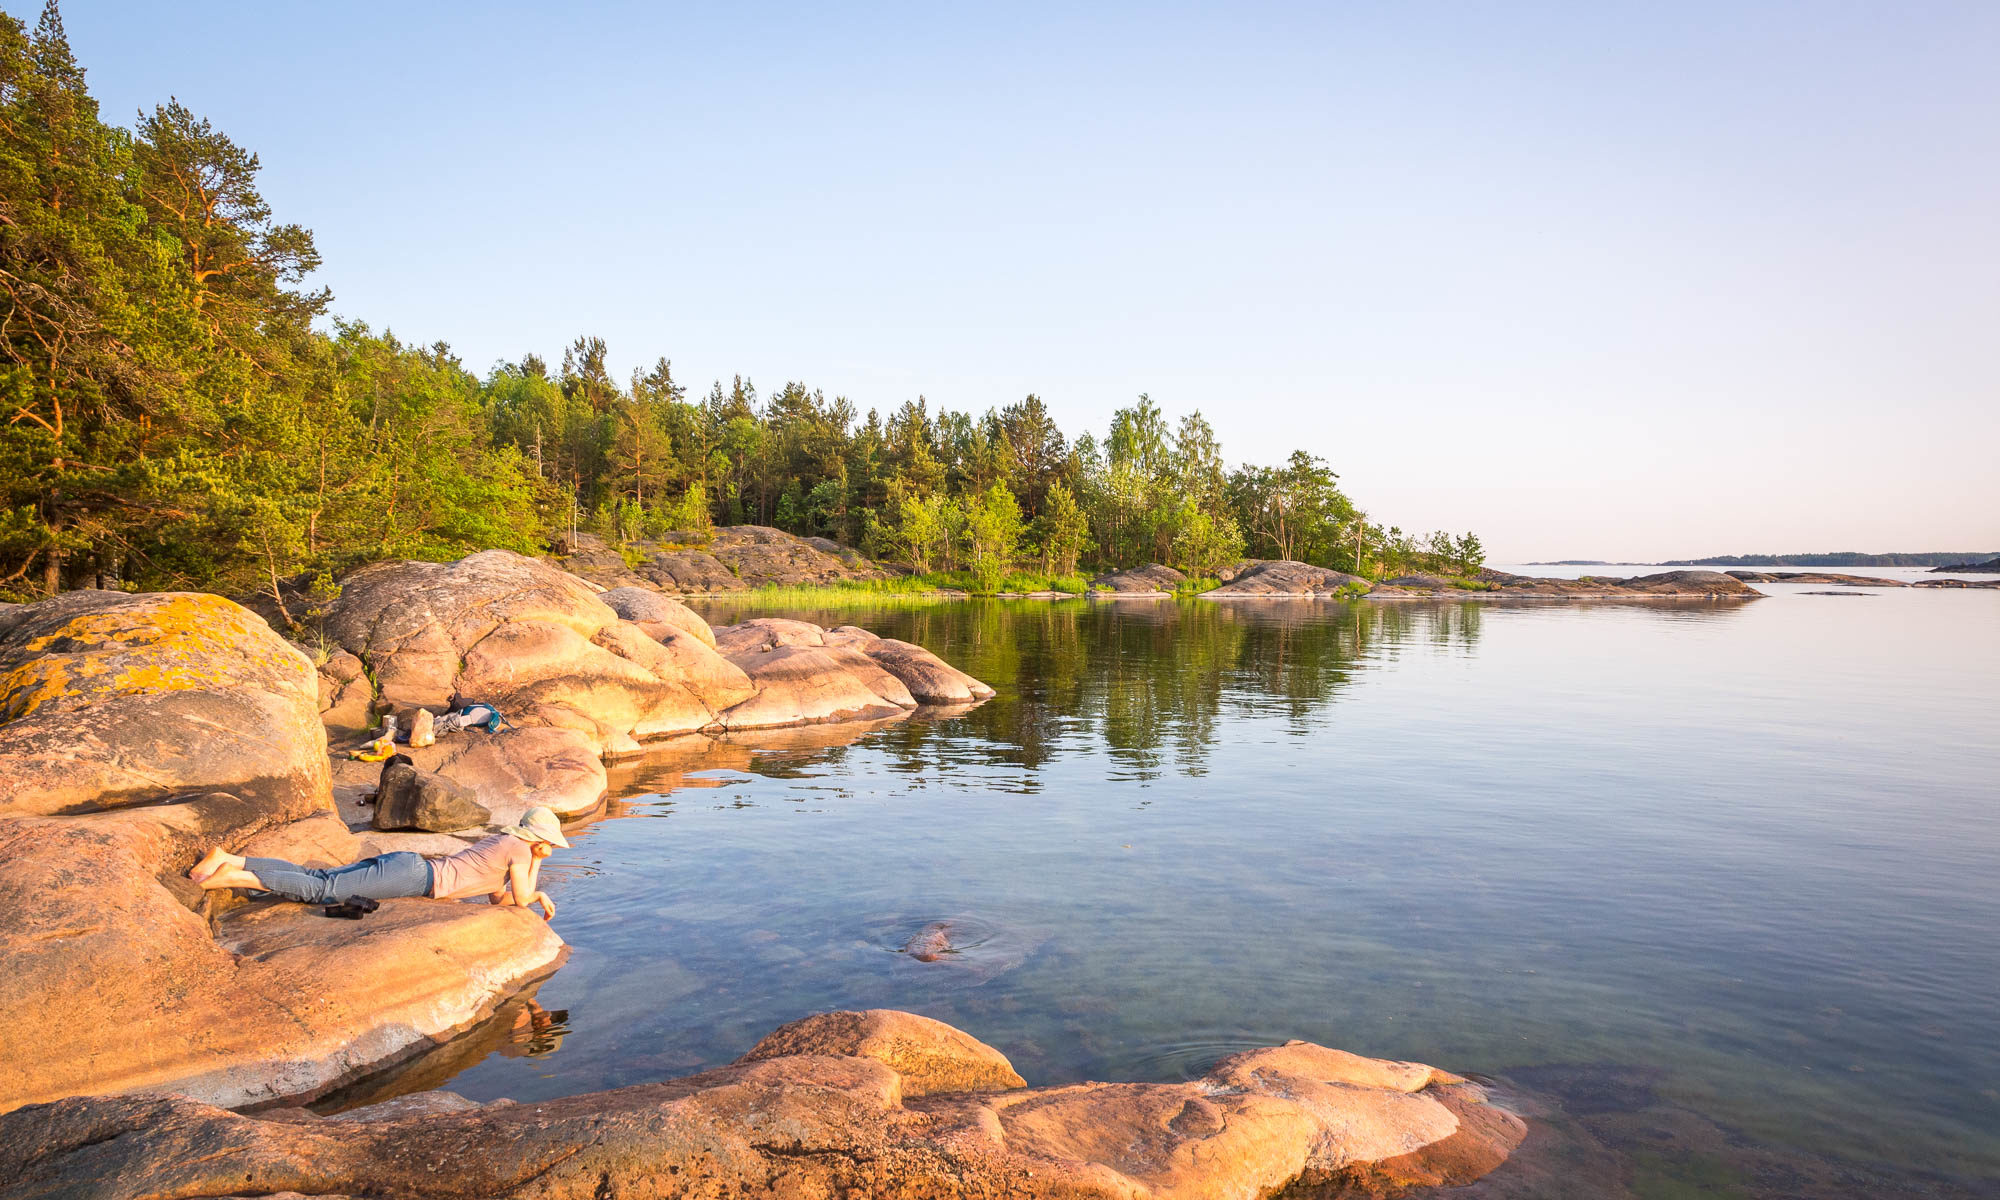 Finland's coast near Helsinki in summer, in June. Peace and quiet in nature on the Finnish coast. Nature in Finland, Helsinki.